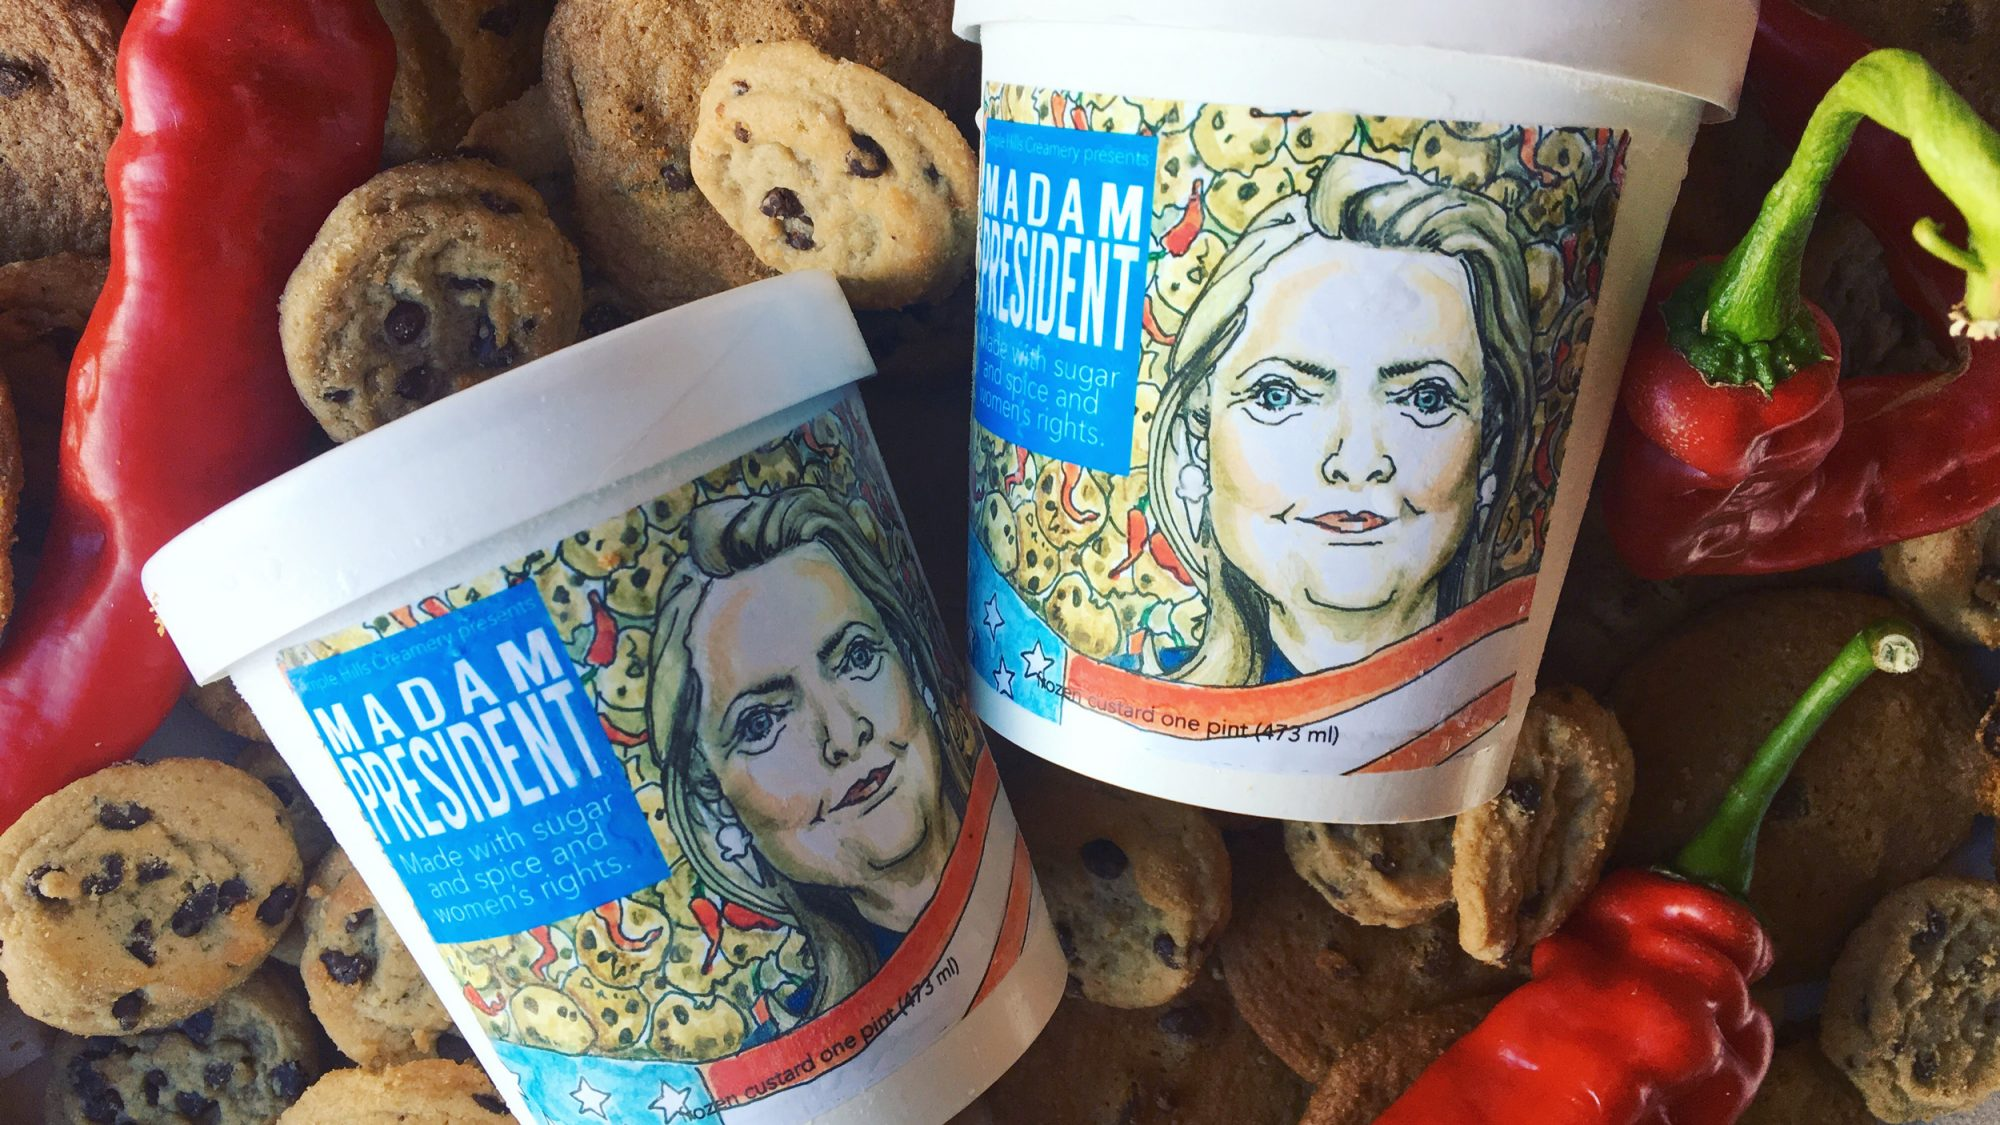 Ample Hill Hillary Clinton Ice Cream